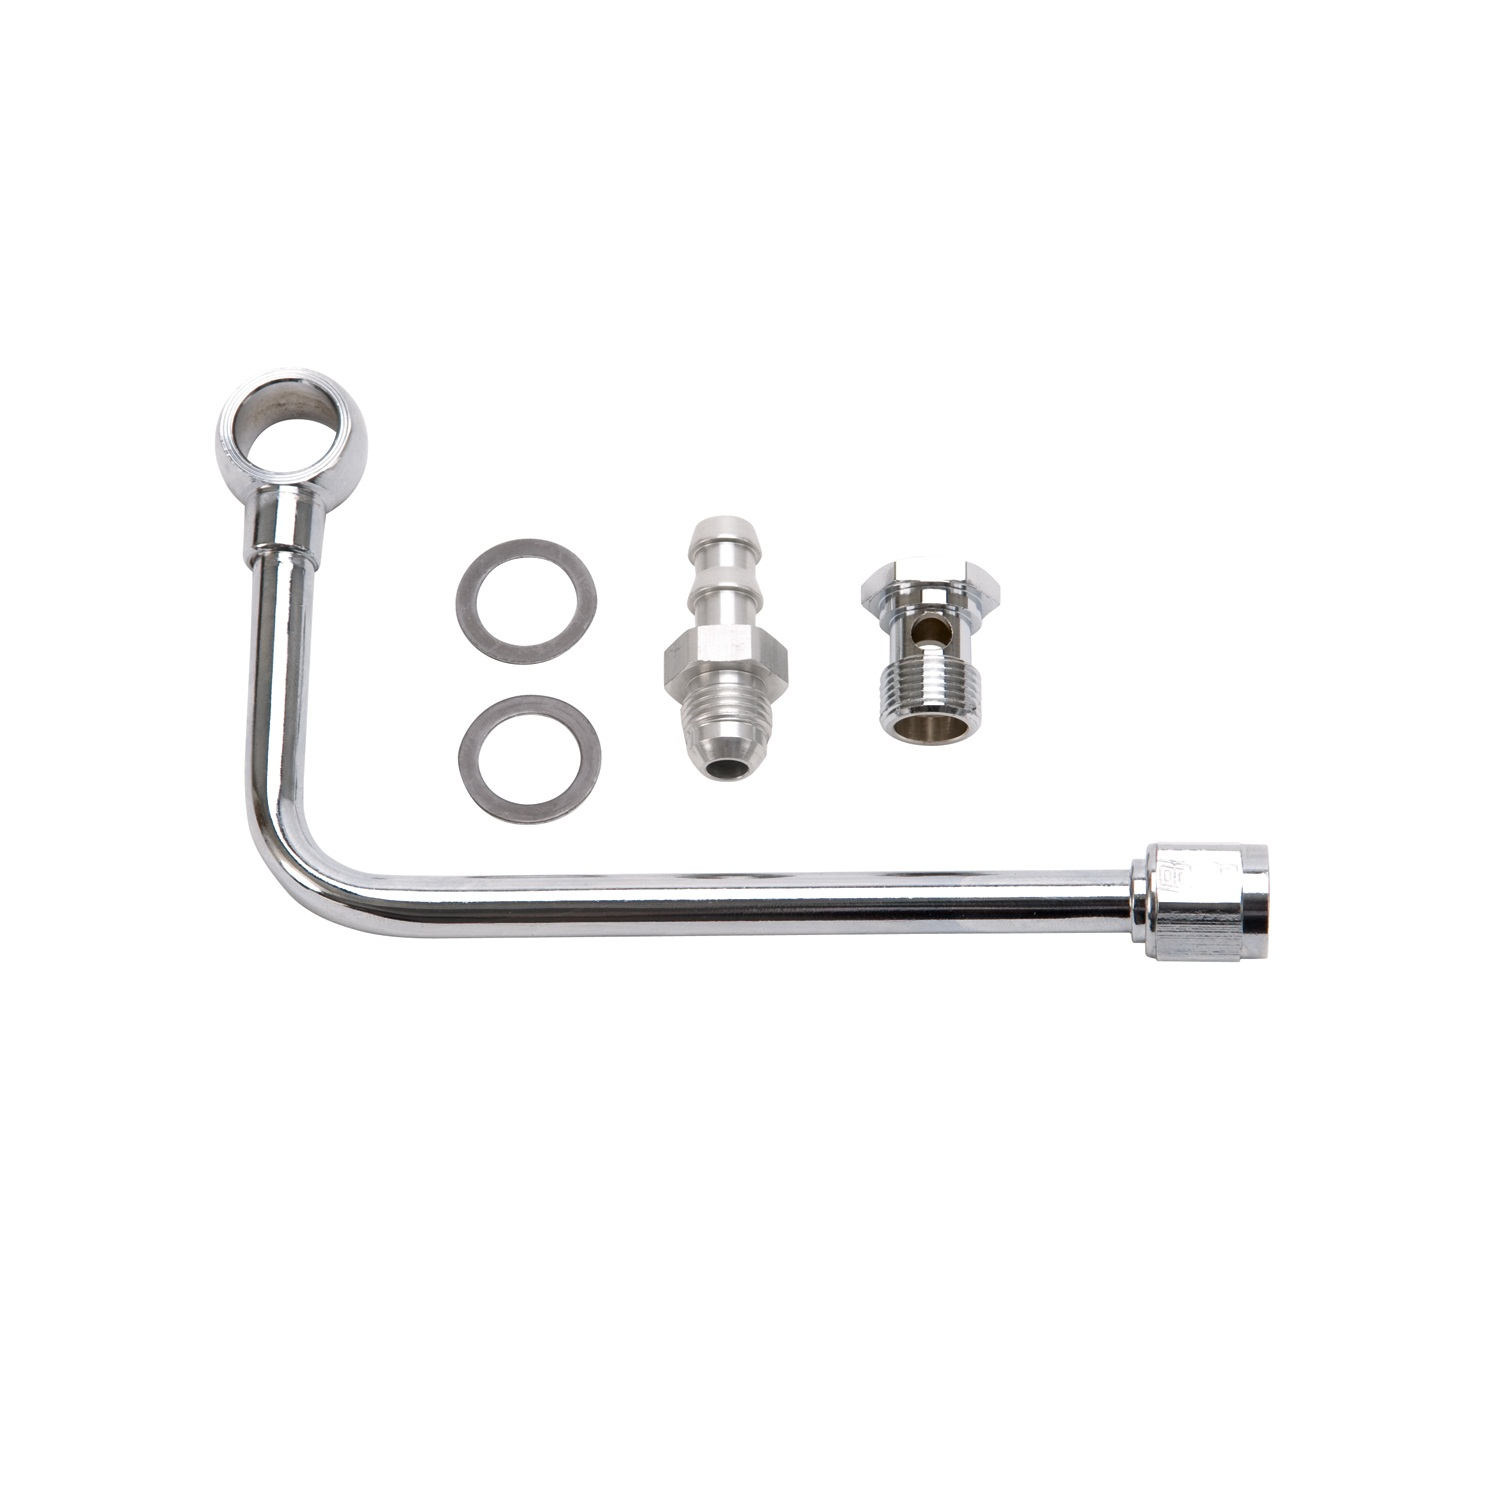 Edelbrock Single Feed Fuel Line Kit